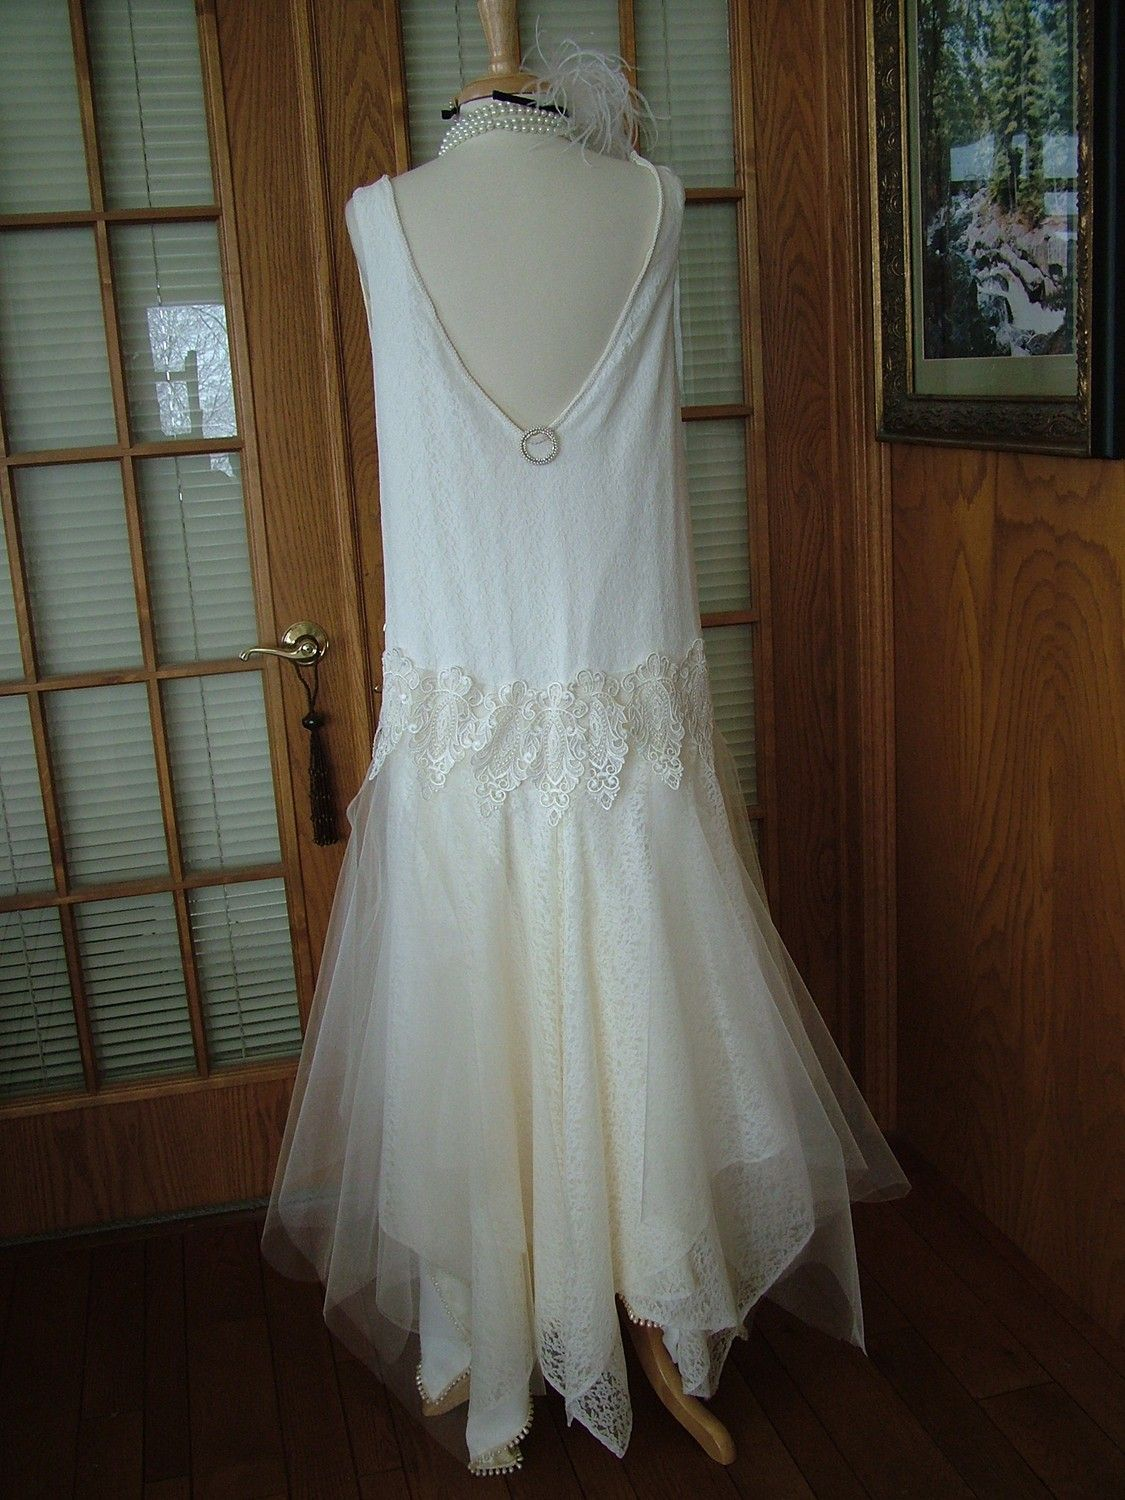 d2739feb4 Wedding dress Custom handmade Vintage Wedding dress 1920s Flapper wedding  great gadsby bride. $650.00, via Etsy.